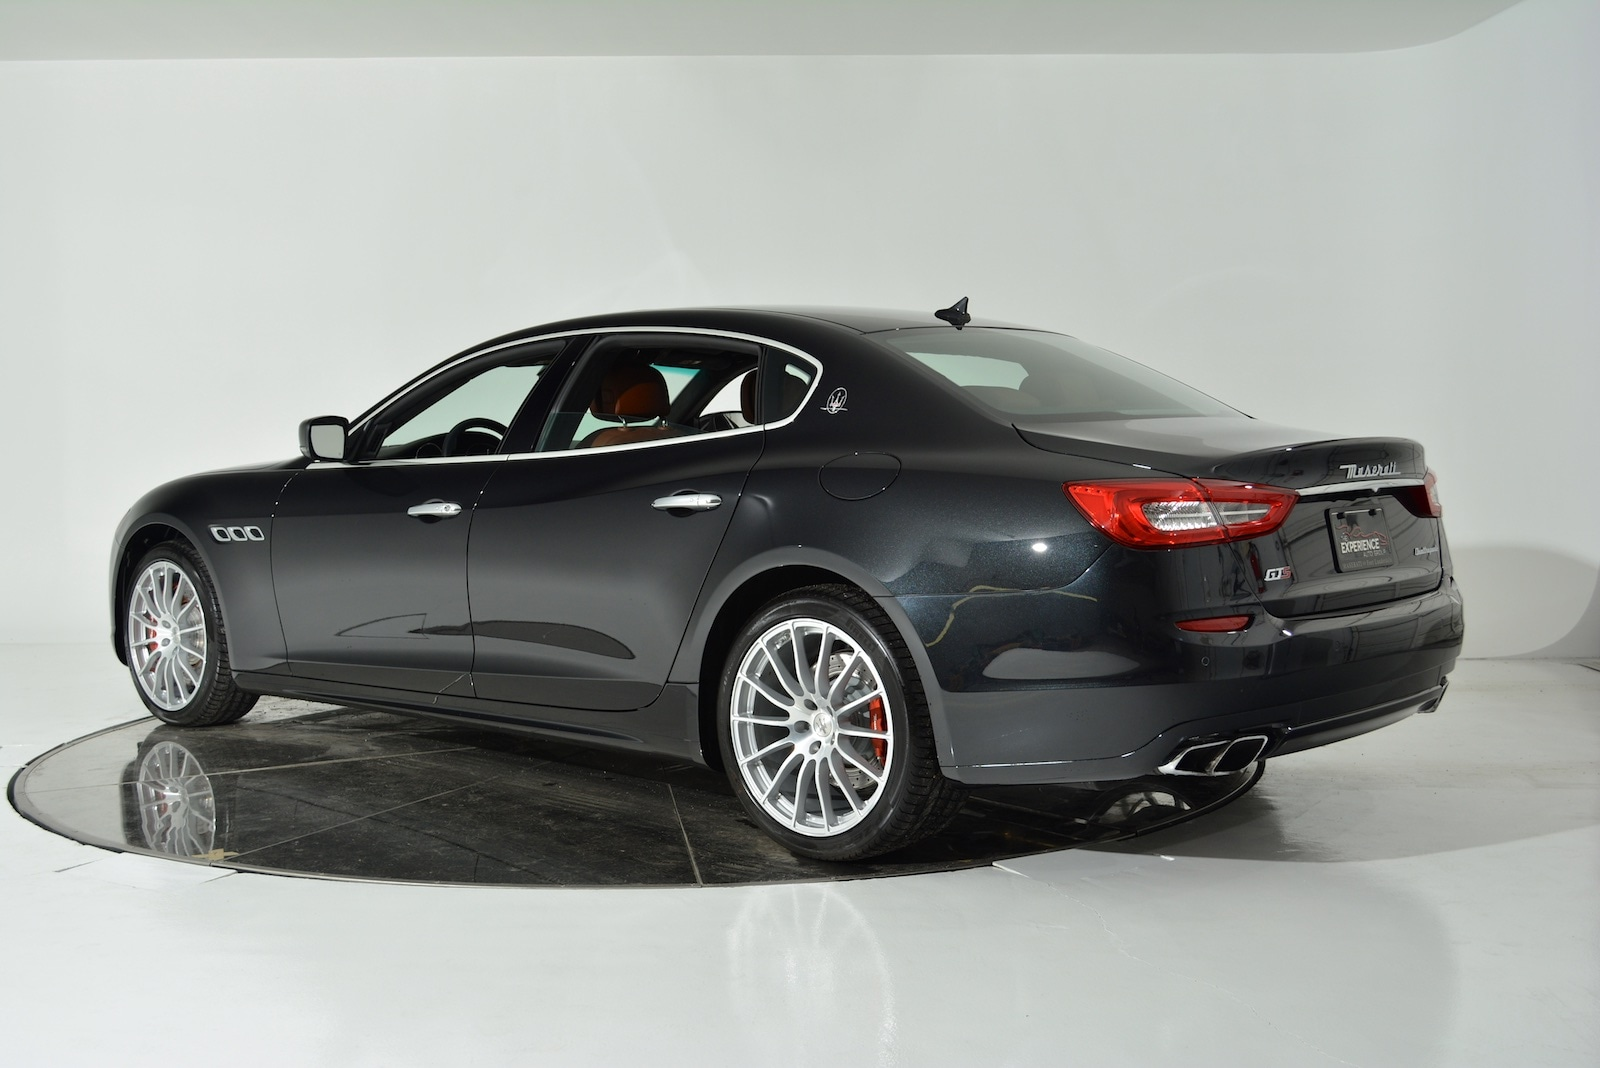 new 2015 maserati quattroporte gts for sale fort lauderdale fl vin zam56ppa2f1135846. Black Bedroom Furniture Sets. Home Design Ideas